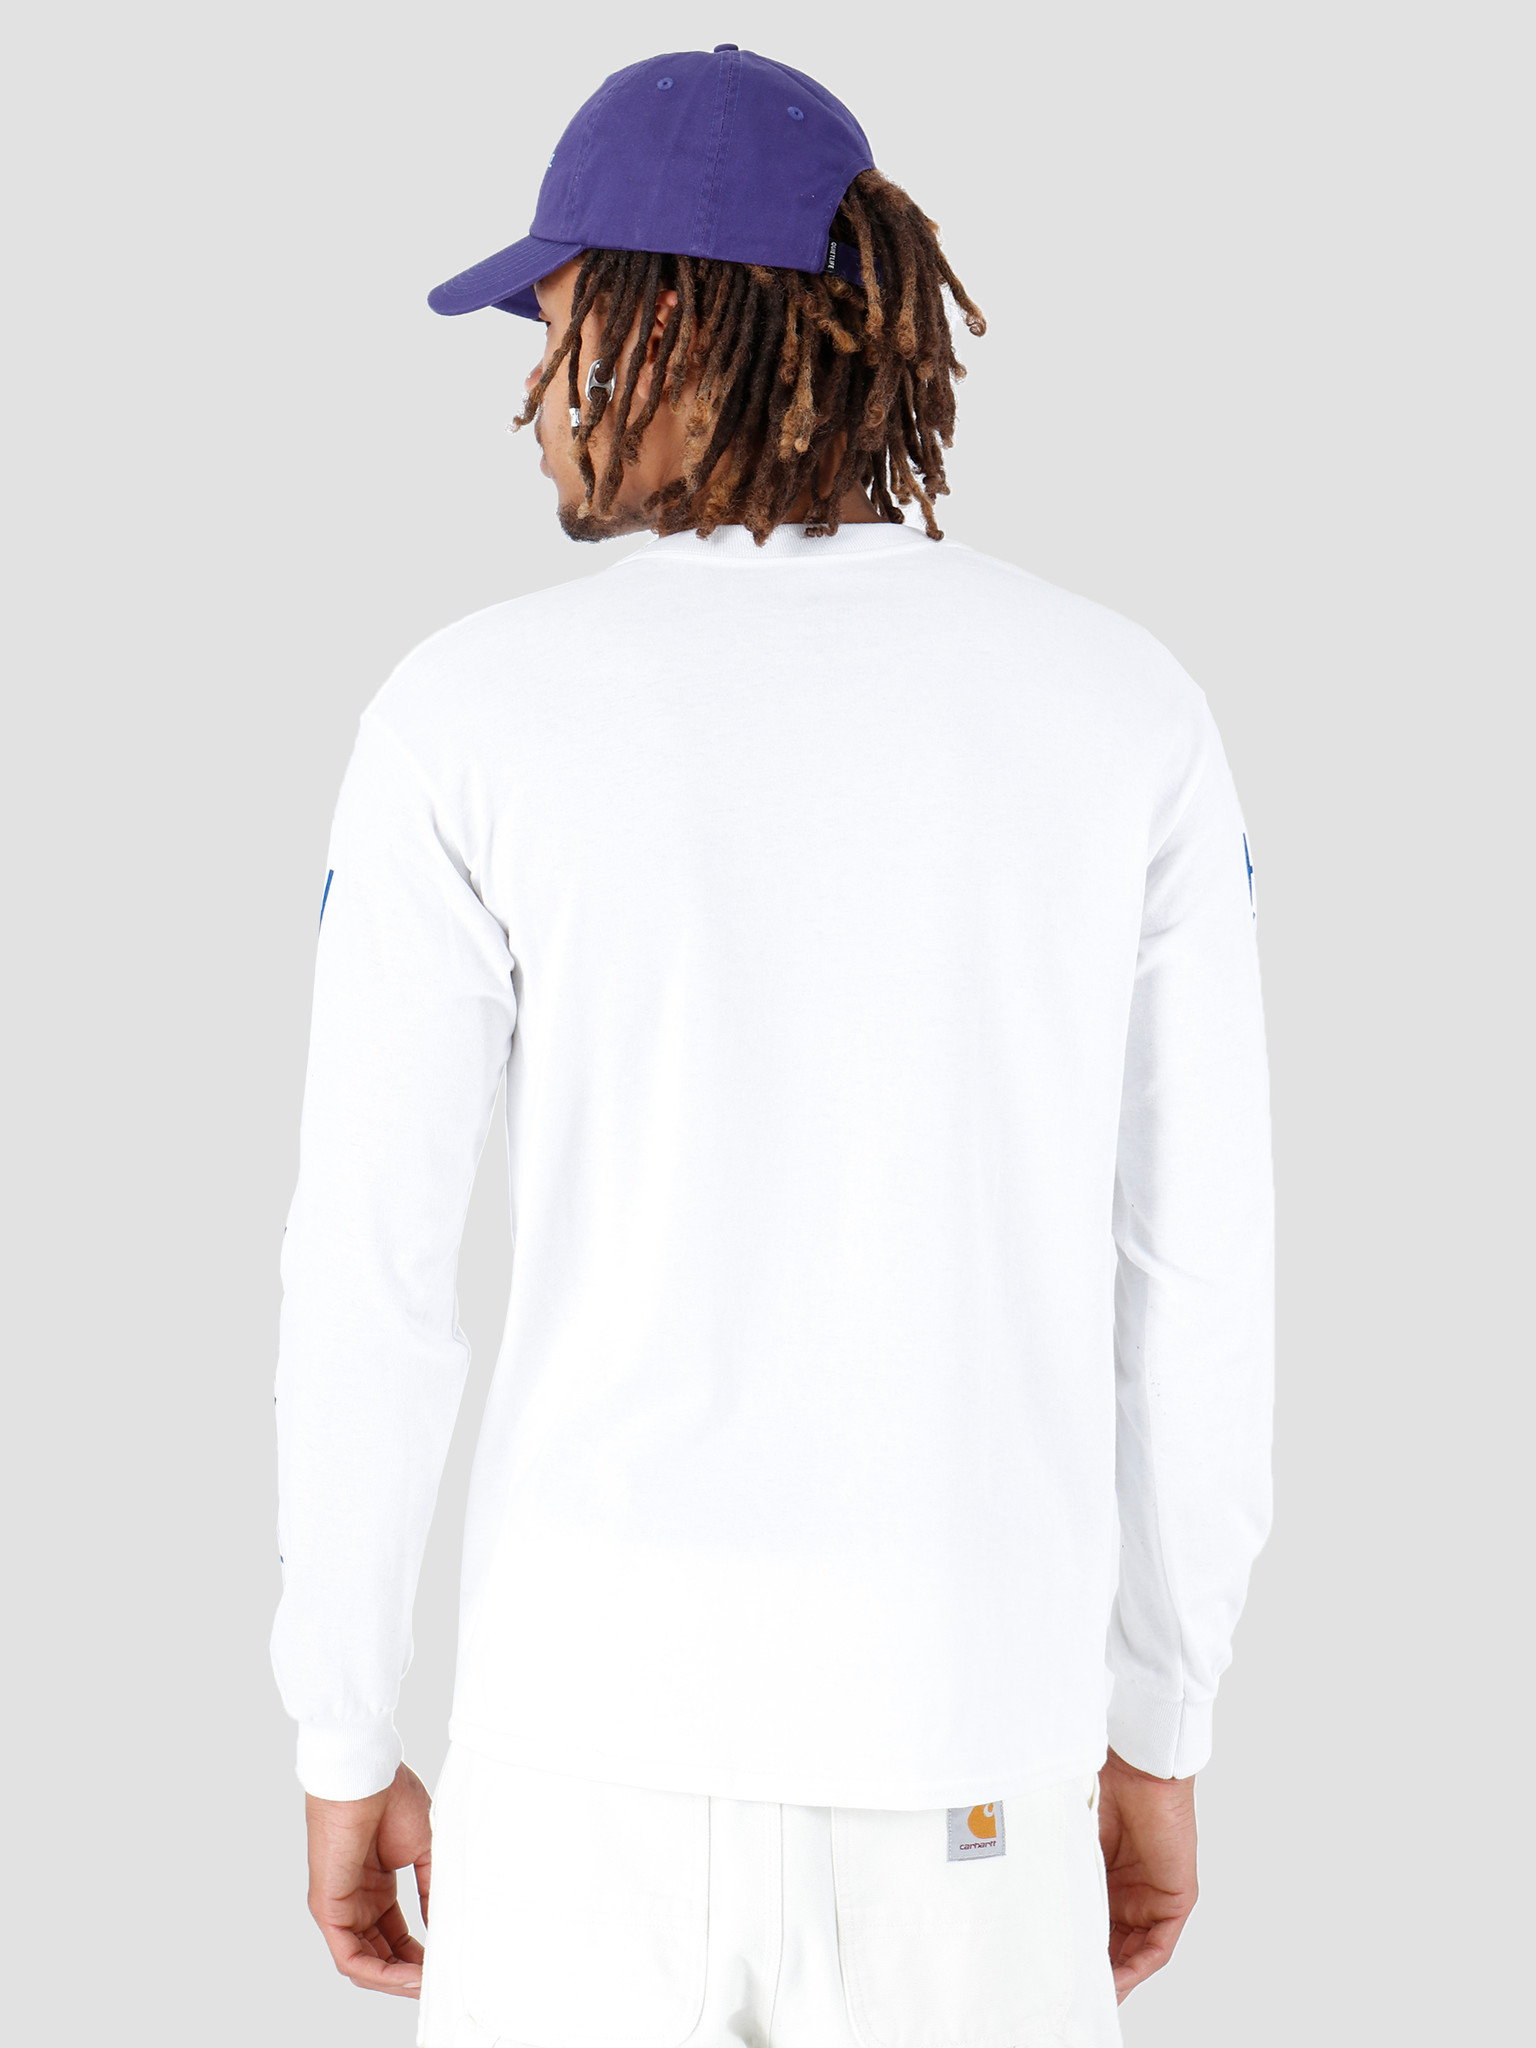 The Quiet Life The Quiet Life Japan Long Sleeve White 19SPD2-2136-WHT